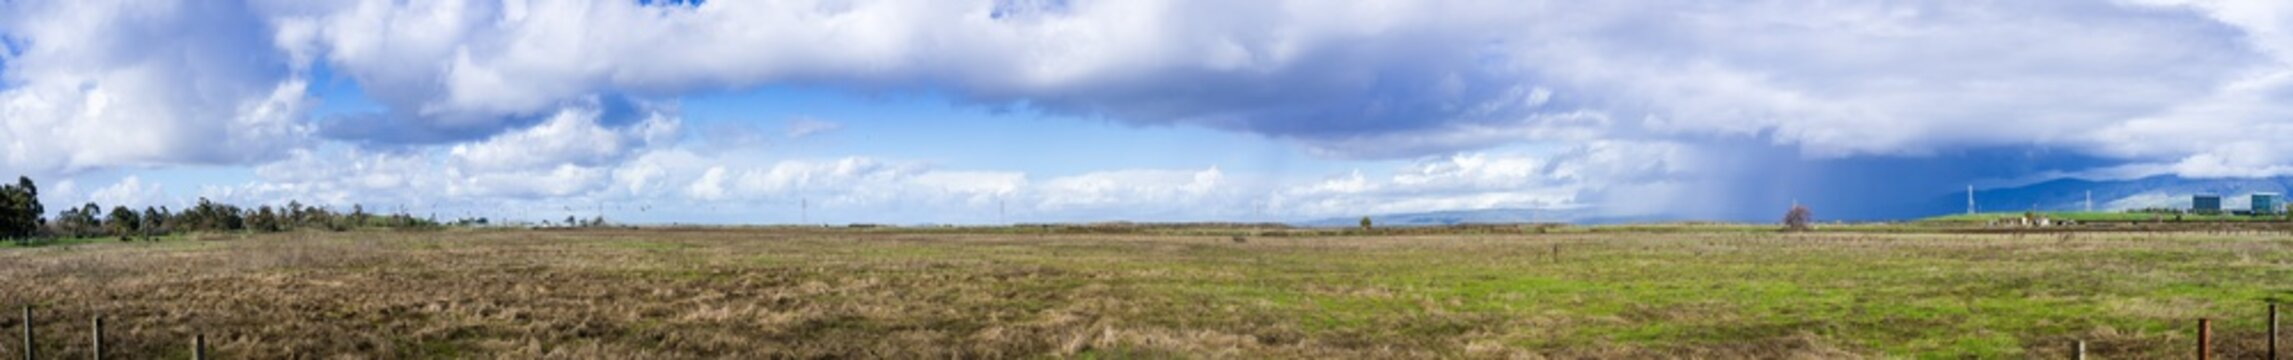 Panoramic view of the grasslands in Baylands Park on a rainy day, Sunnyvale, Santa Clara county, California